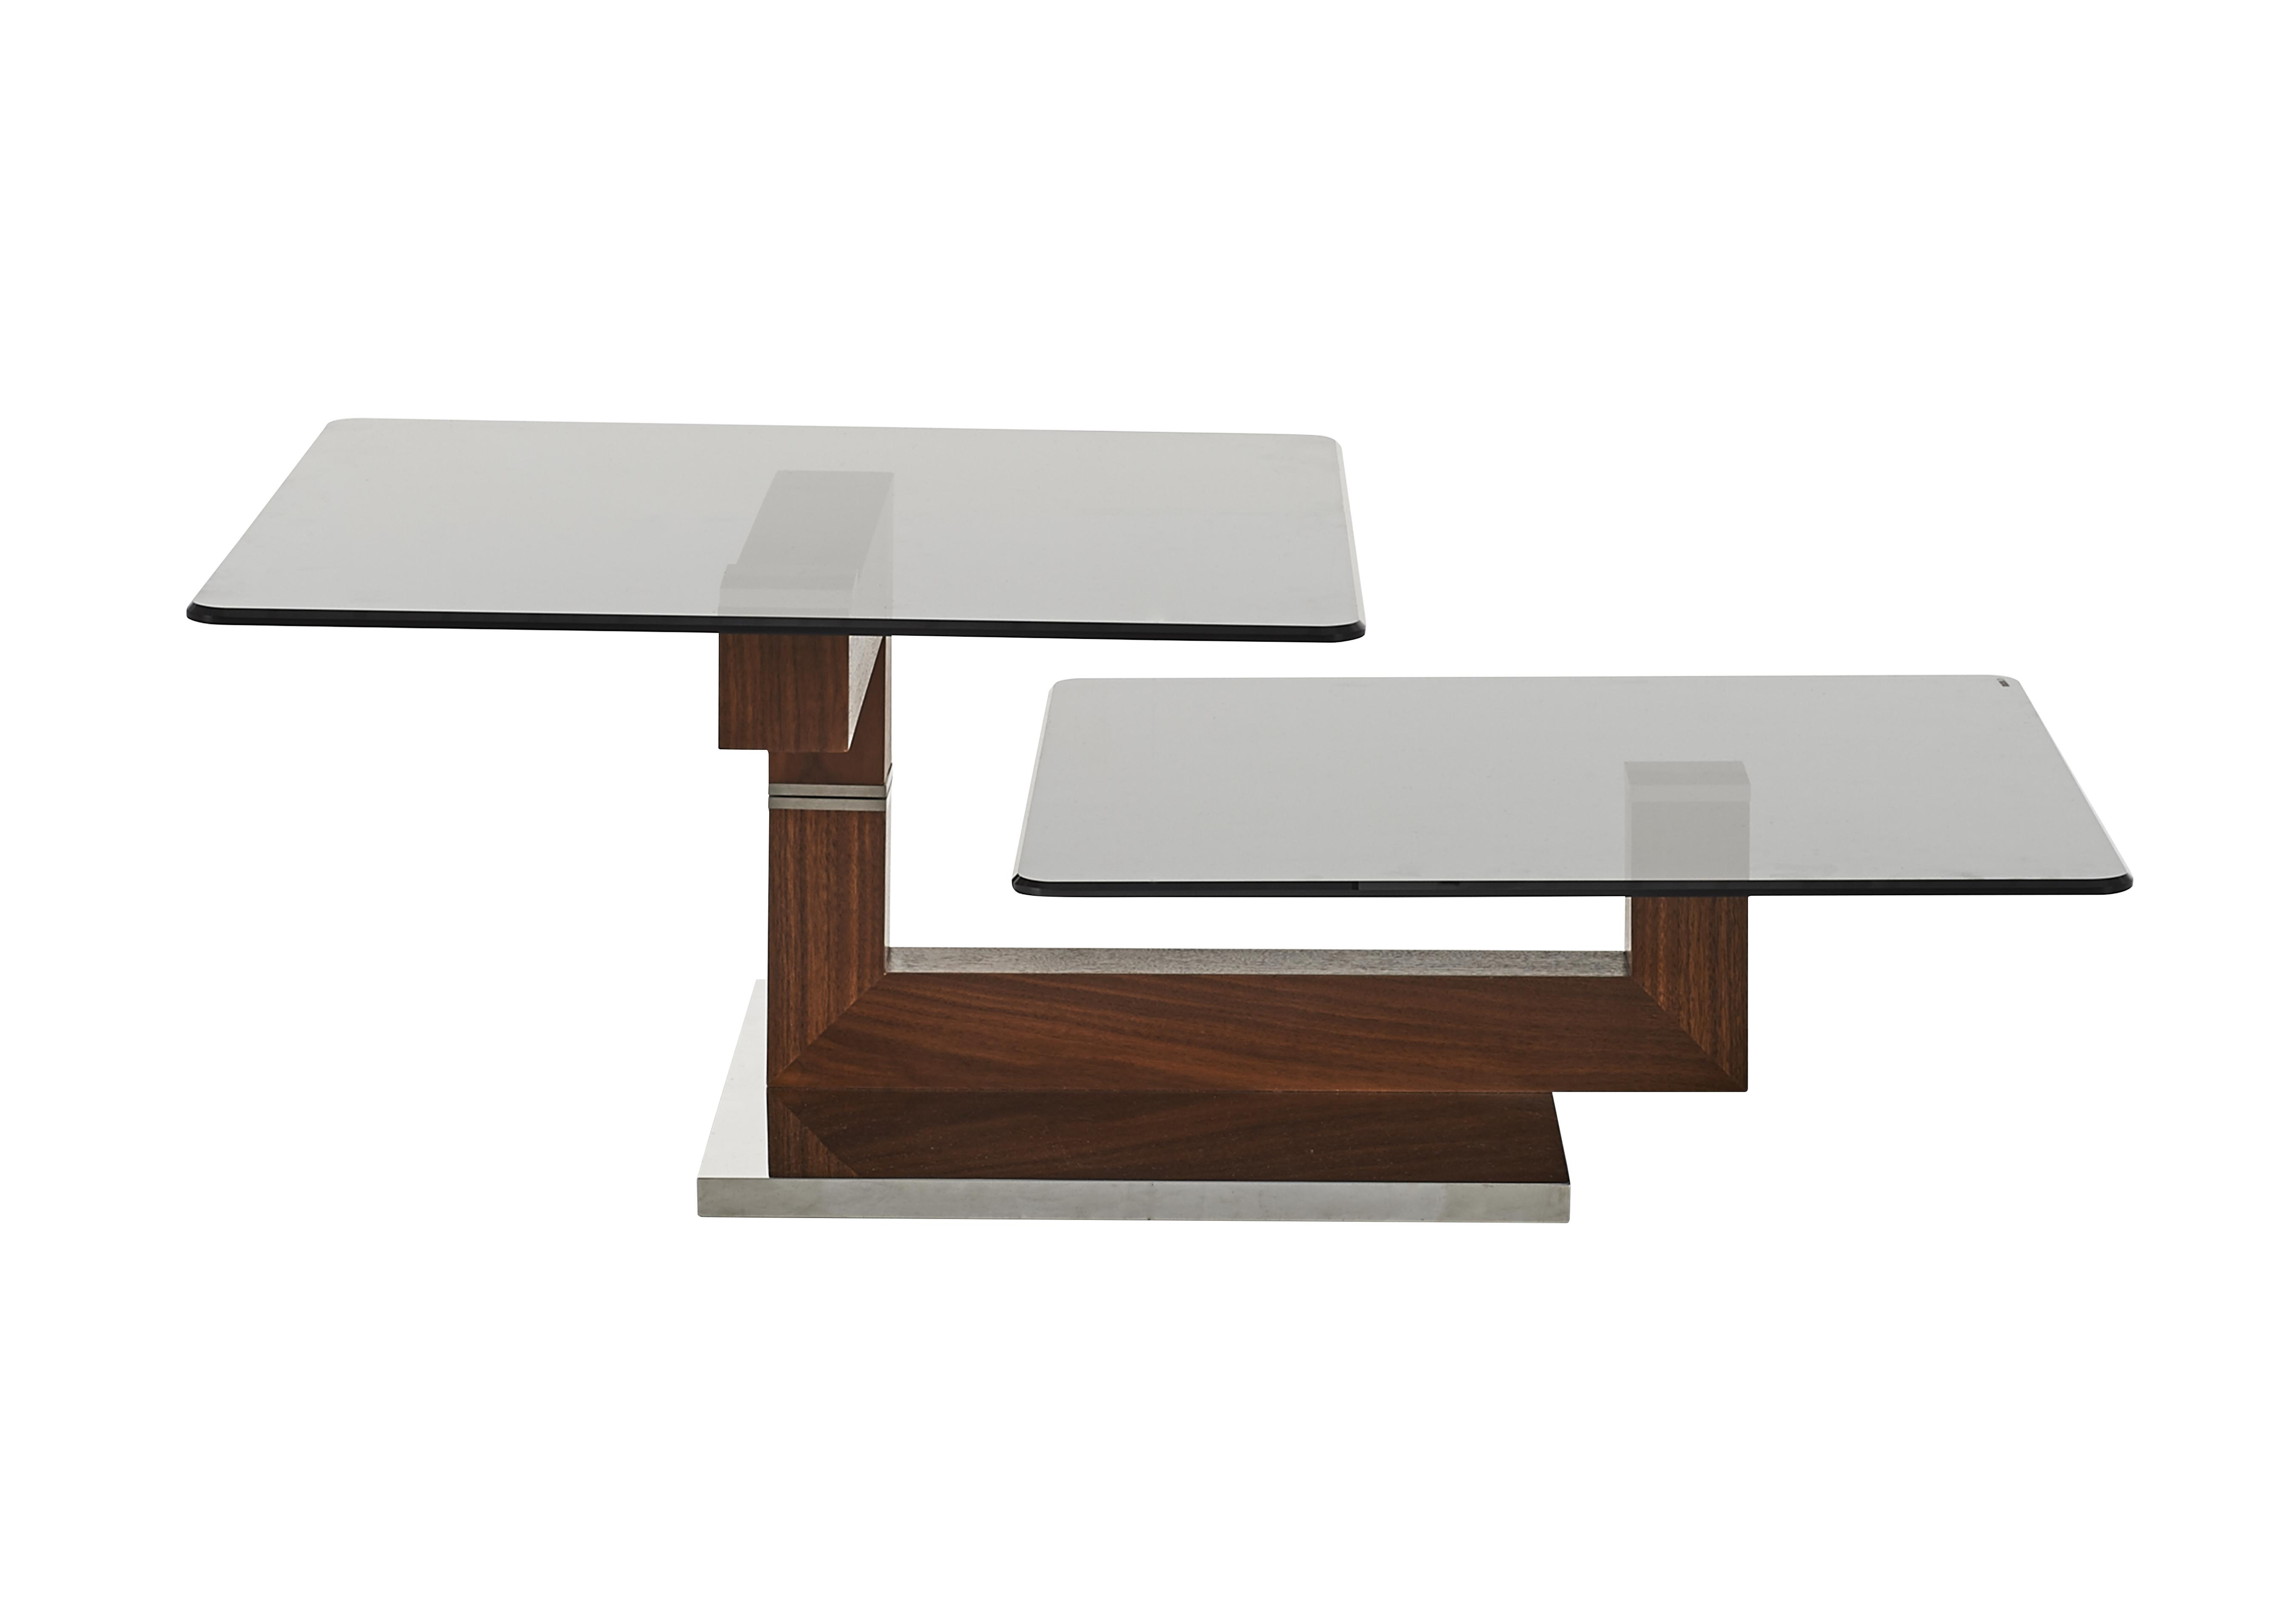 ... Intended Inspiration Coffee Tables